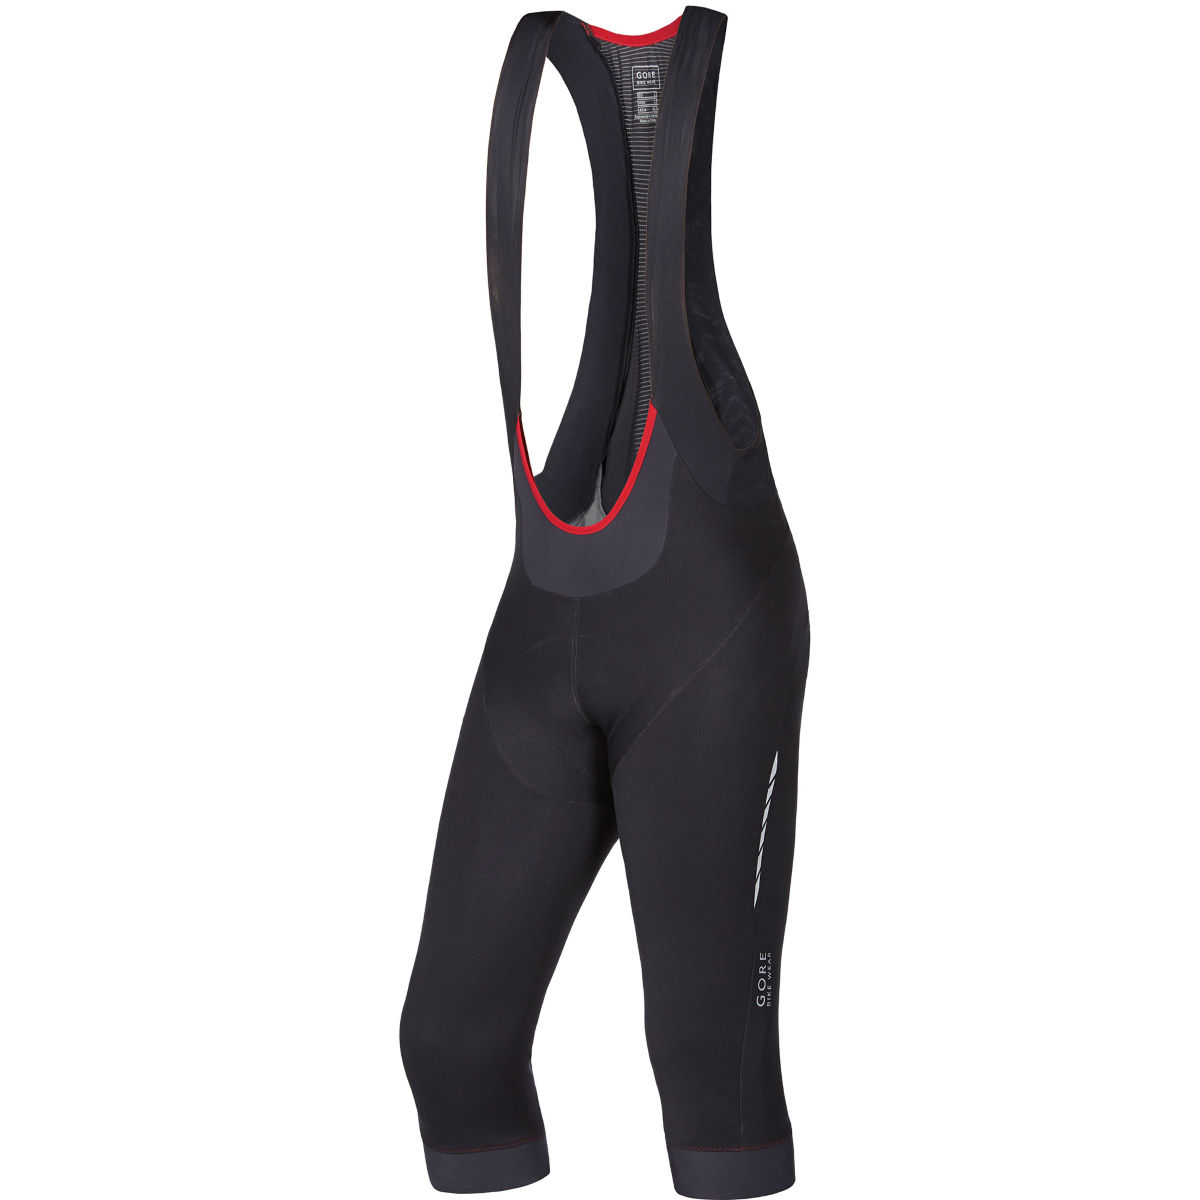 Gore Bike Wear Oxygen Windstopper Softshell 3/4 Bib Tights+ - Large